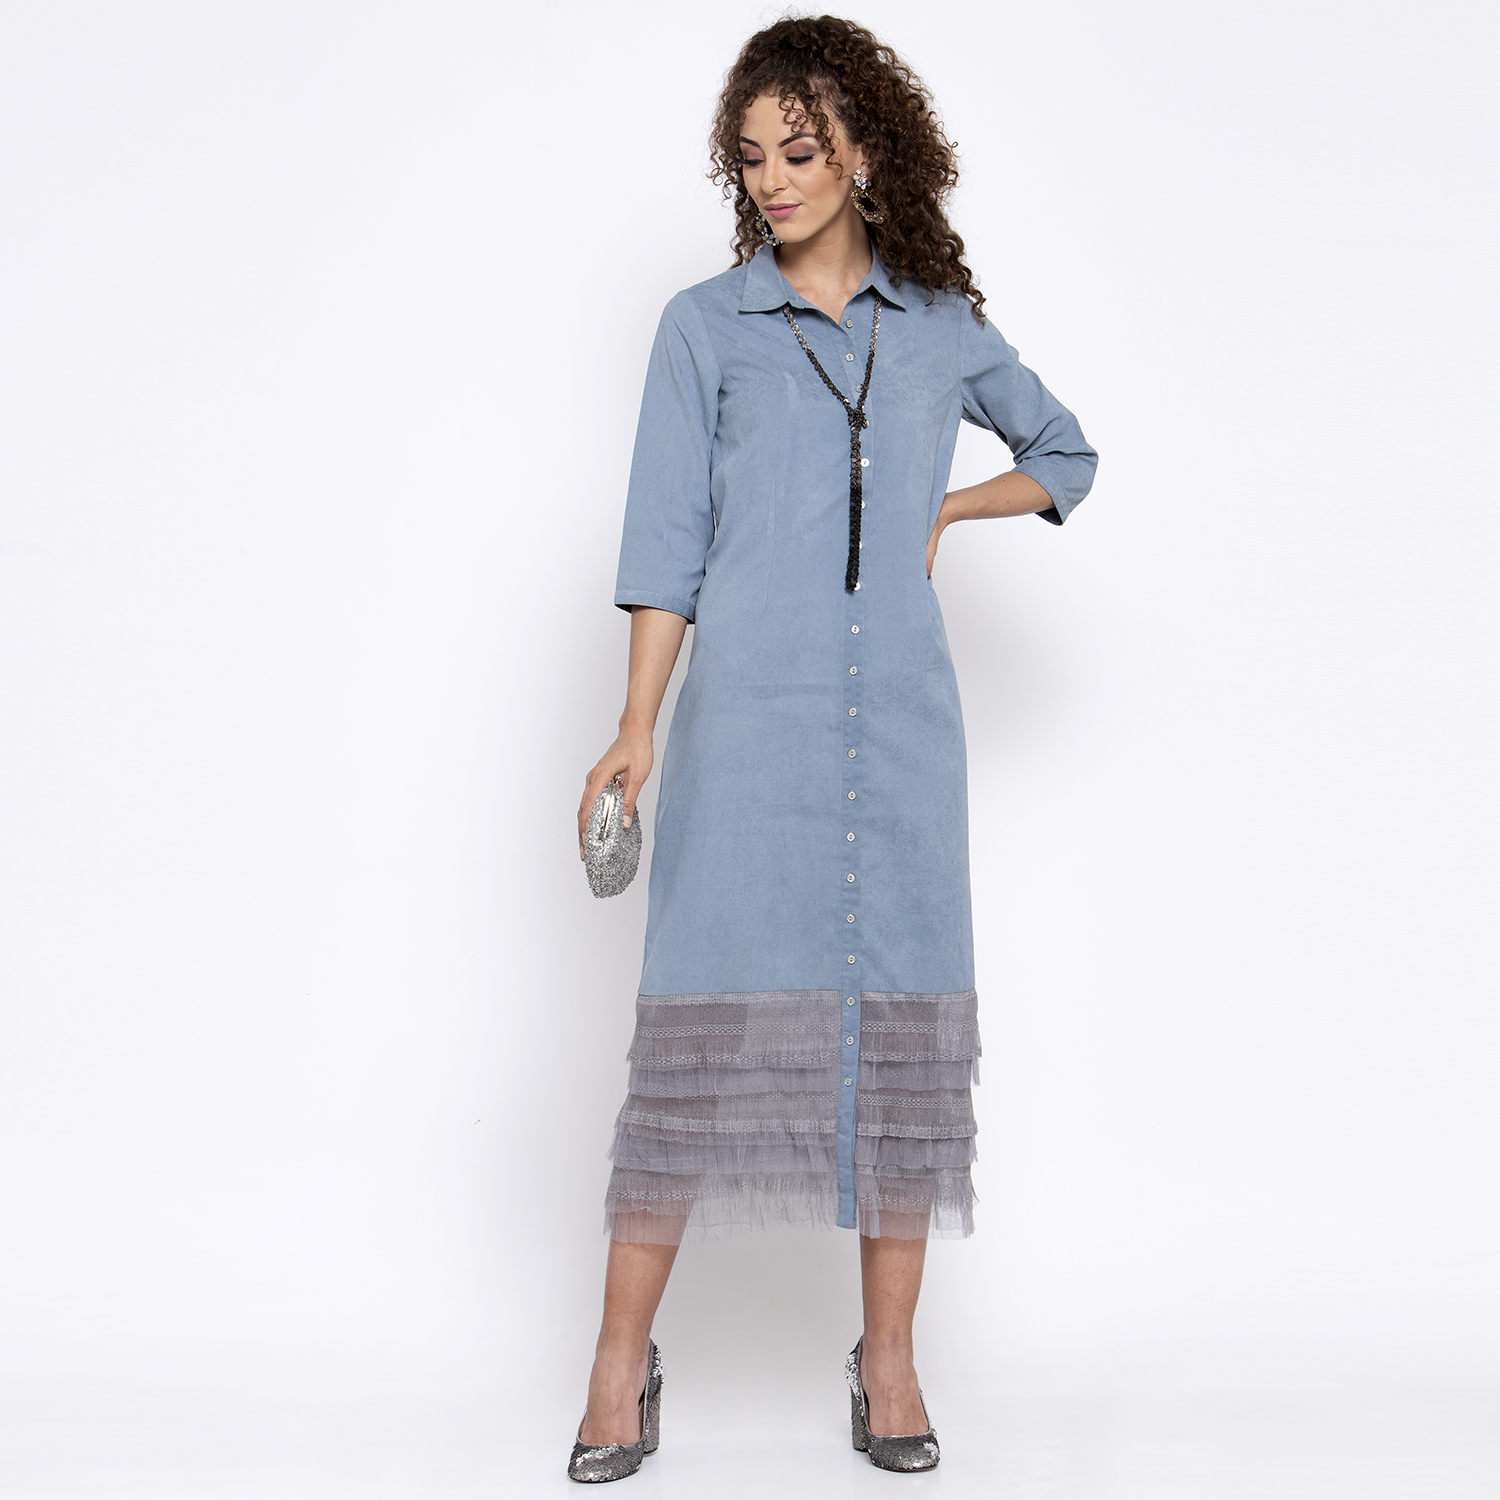 Blue long dress with grey frill at bottom